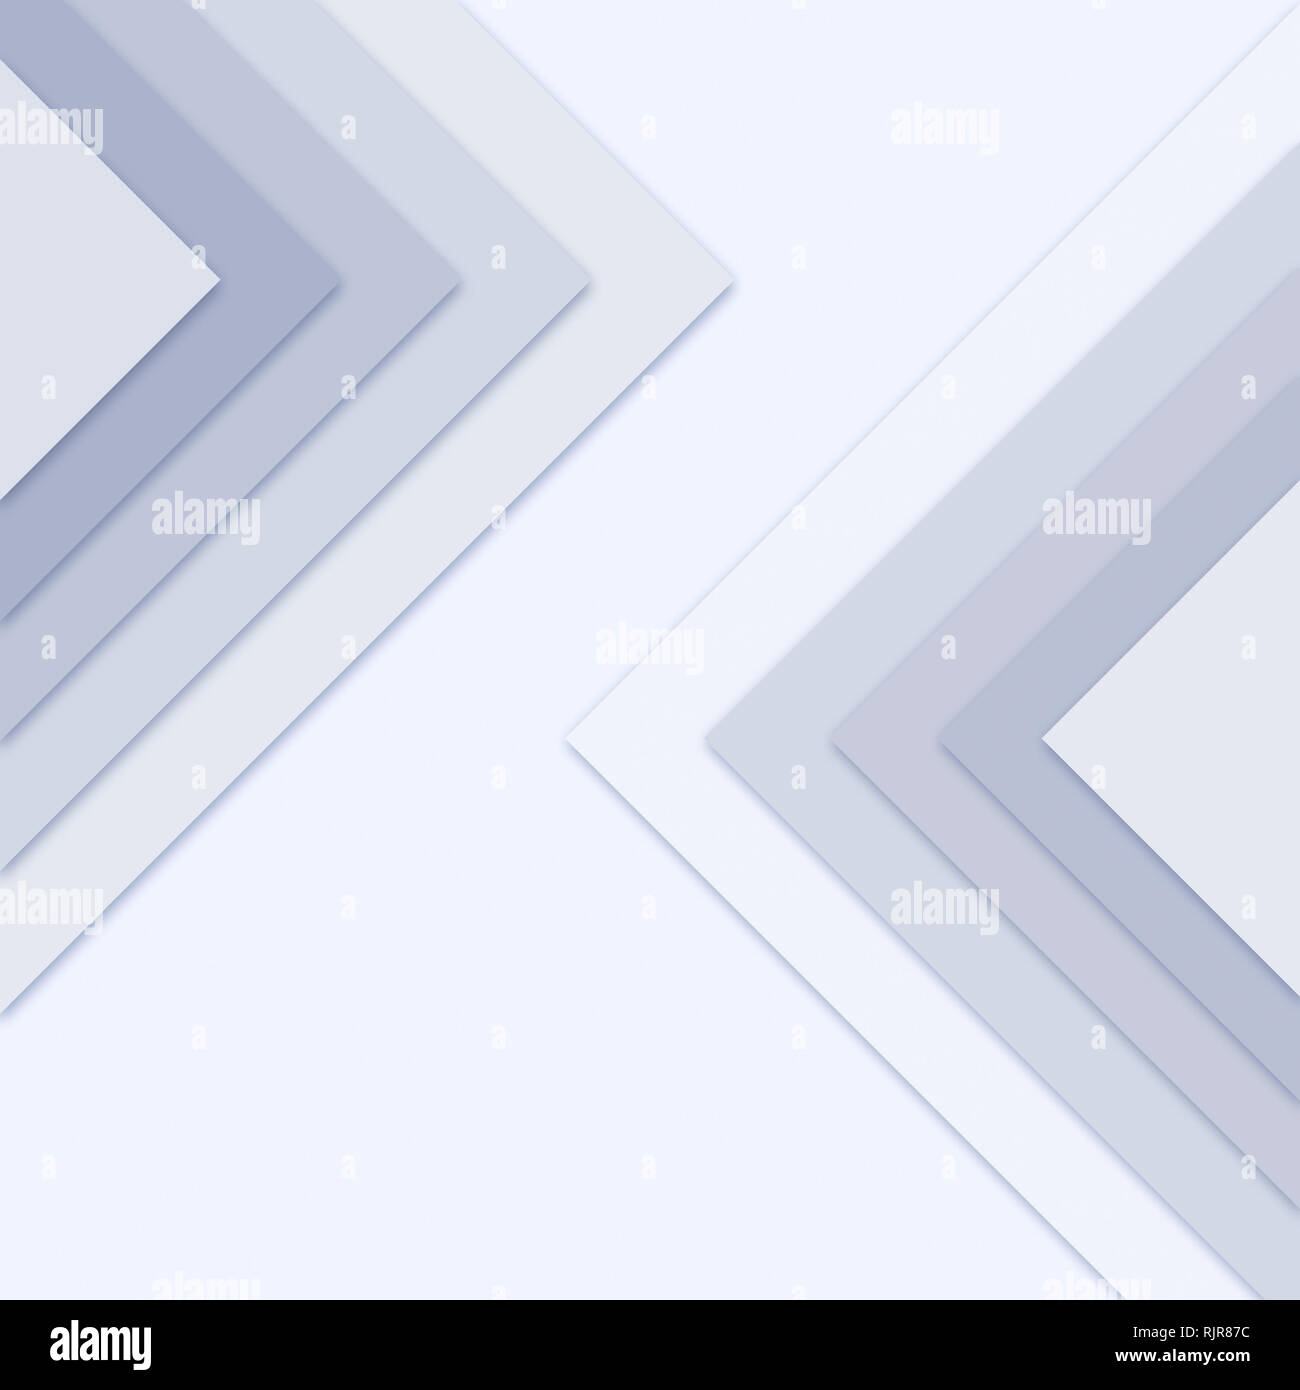 Large monochrome triangles with drop shadows on top of each others, blue hue. Simple abstract pattern for design or background. Stock Photo